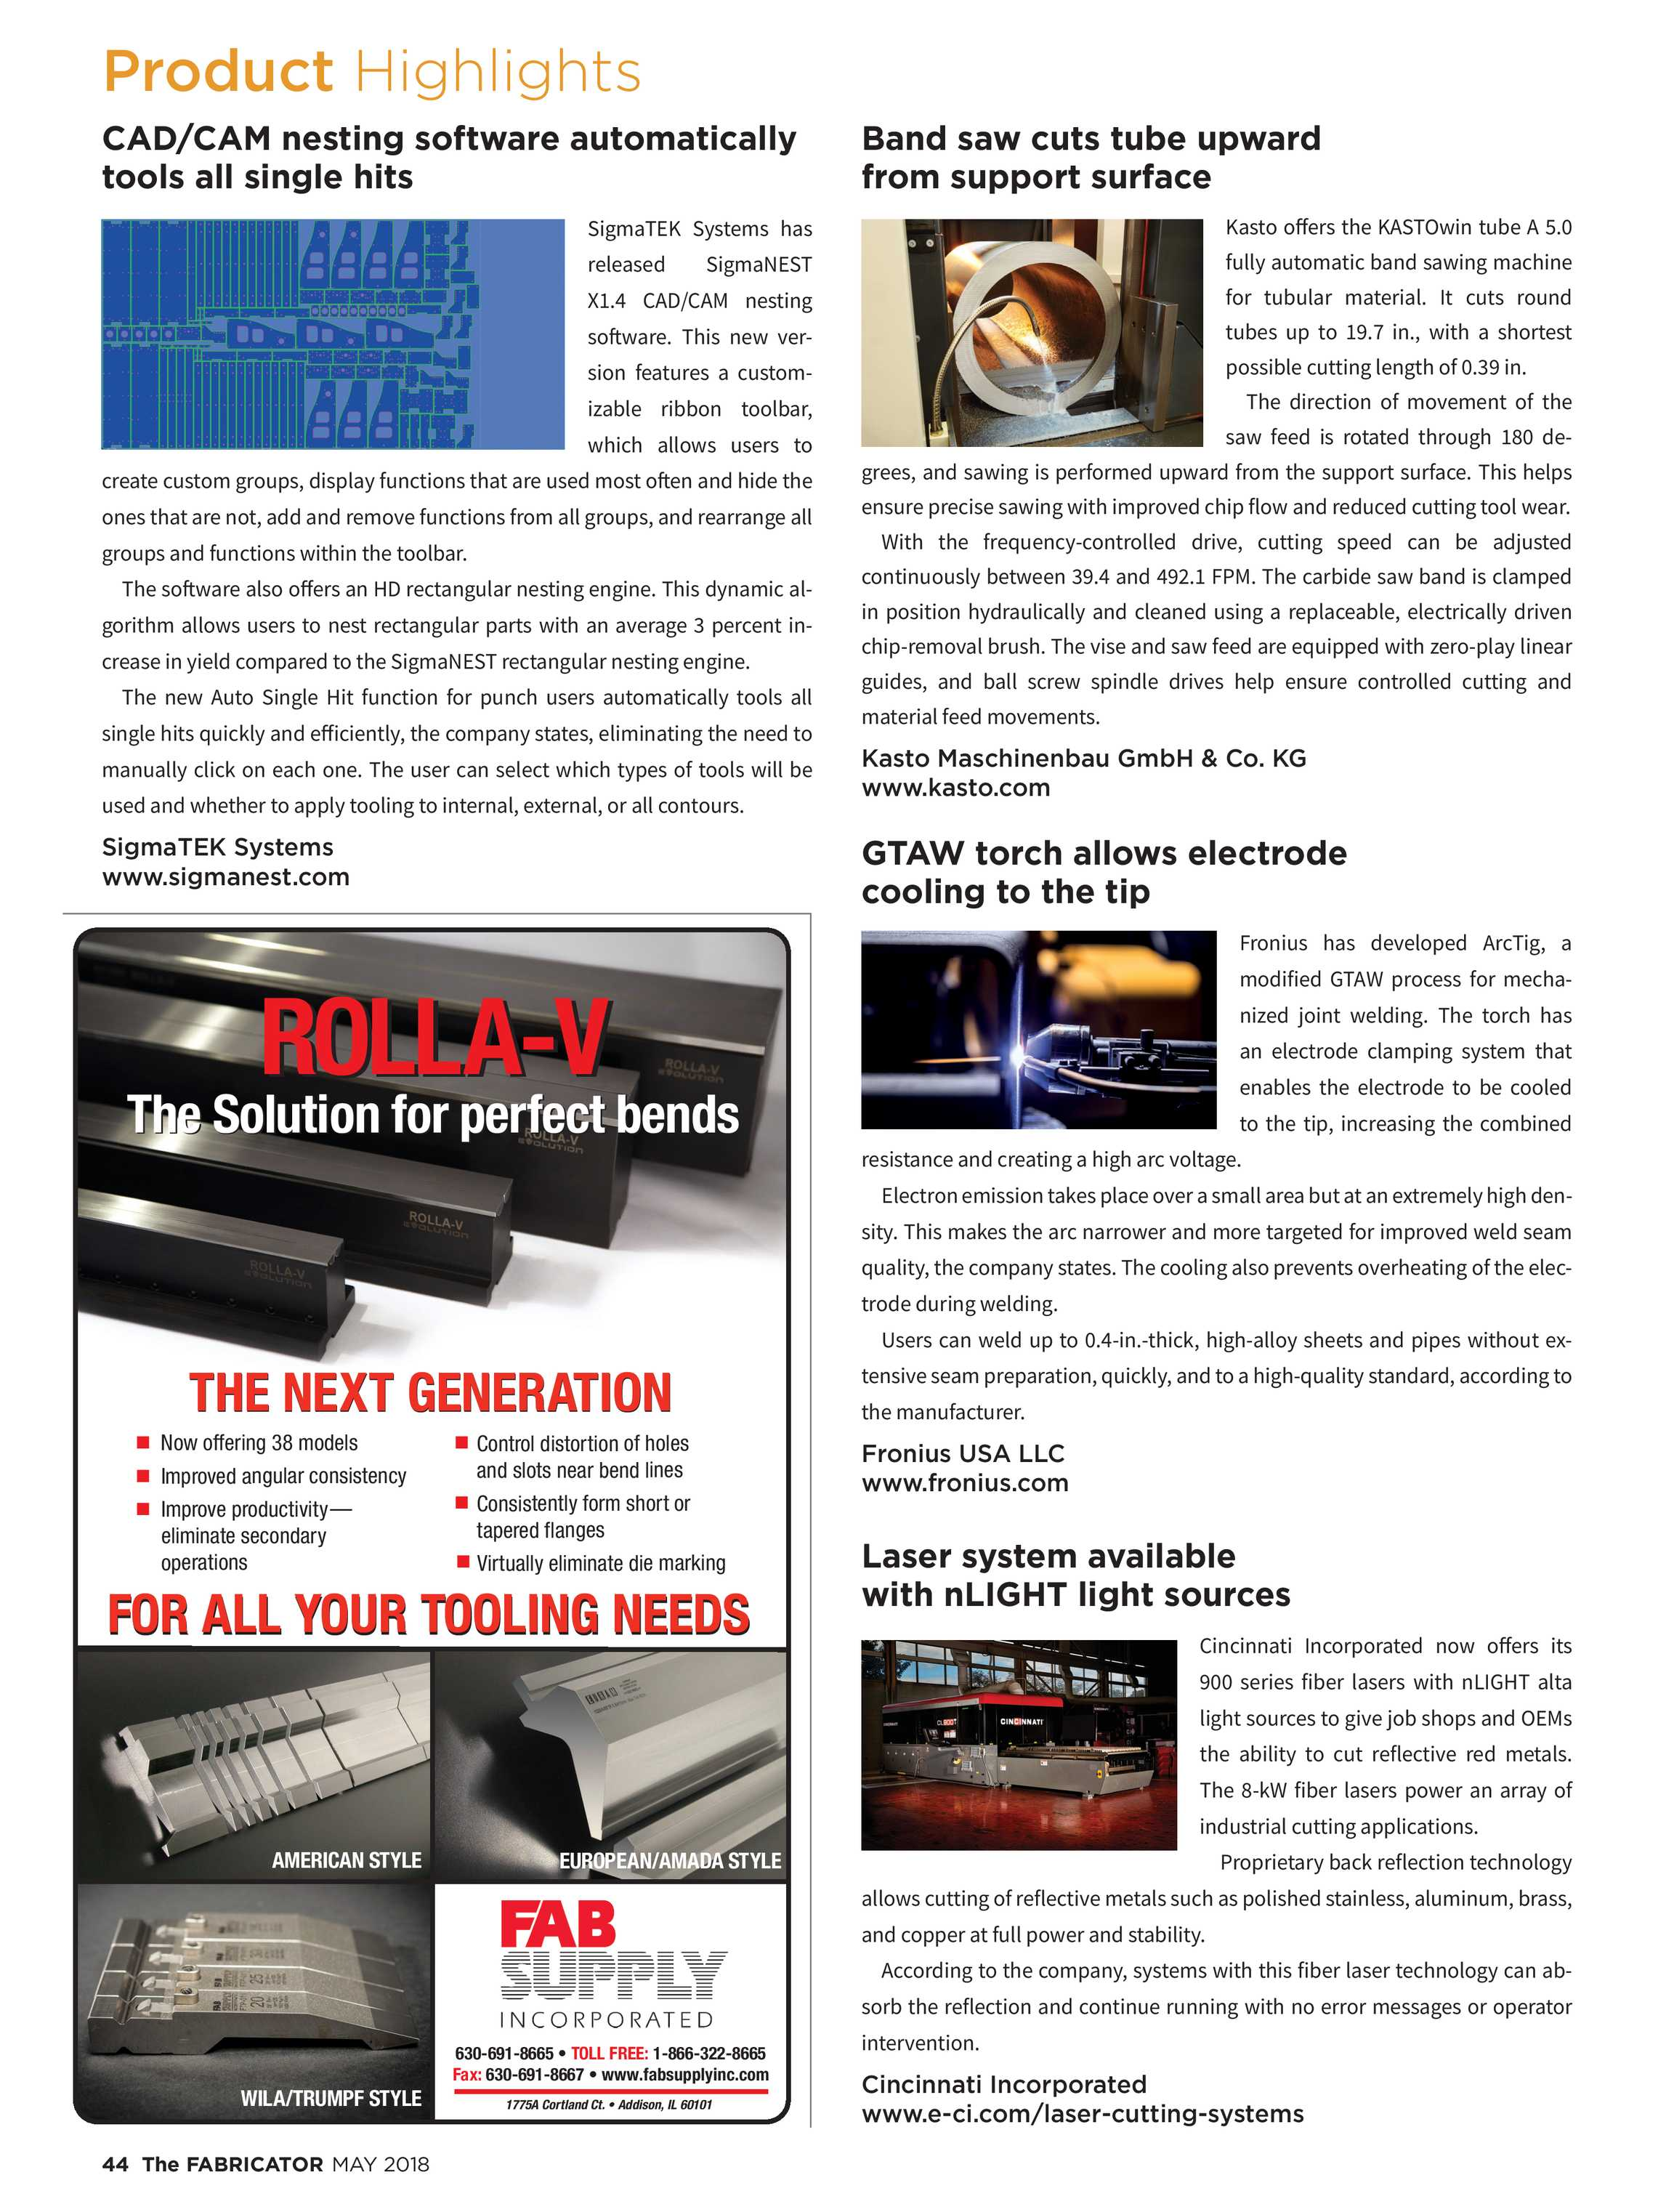 The Fabricator - May 2018 - page 43